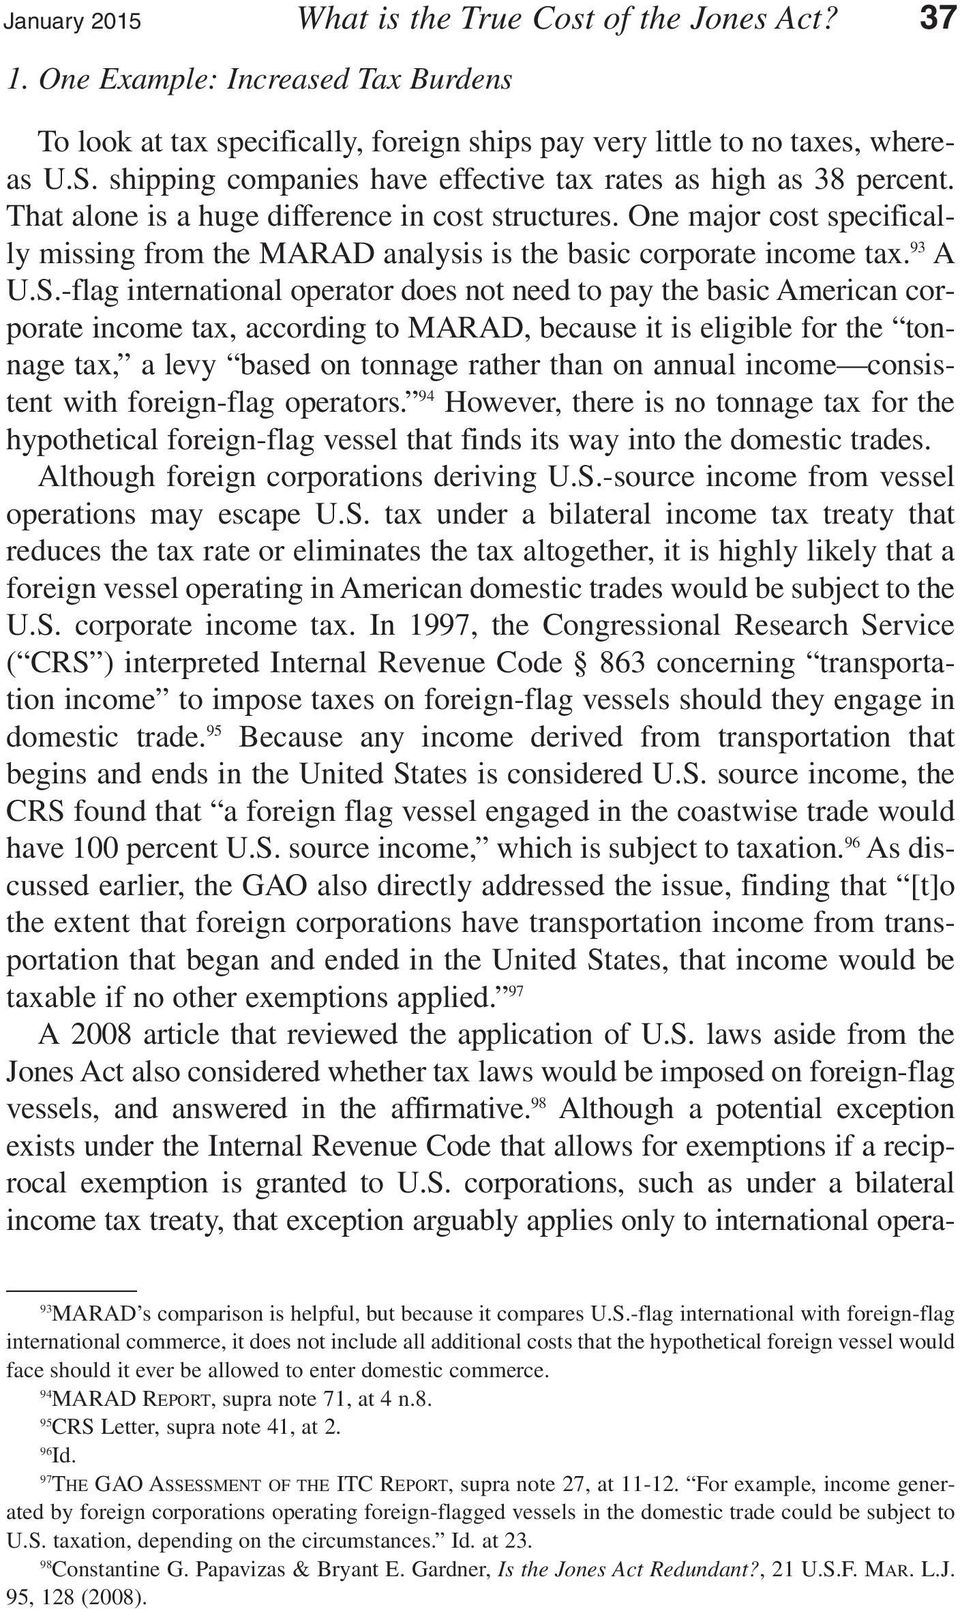 One major cost specifically missing from the MARAD analysis is the basic corporate income tax. 93 A U.S.